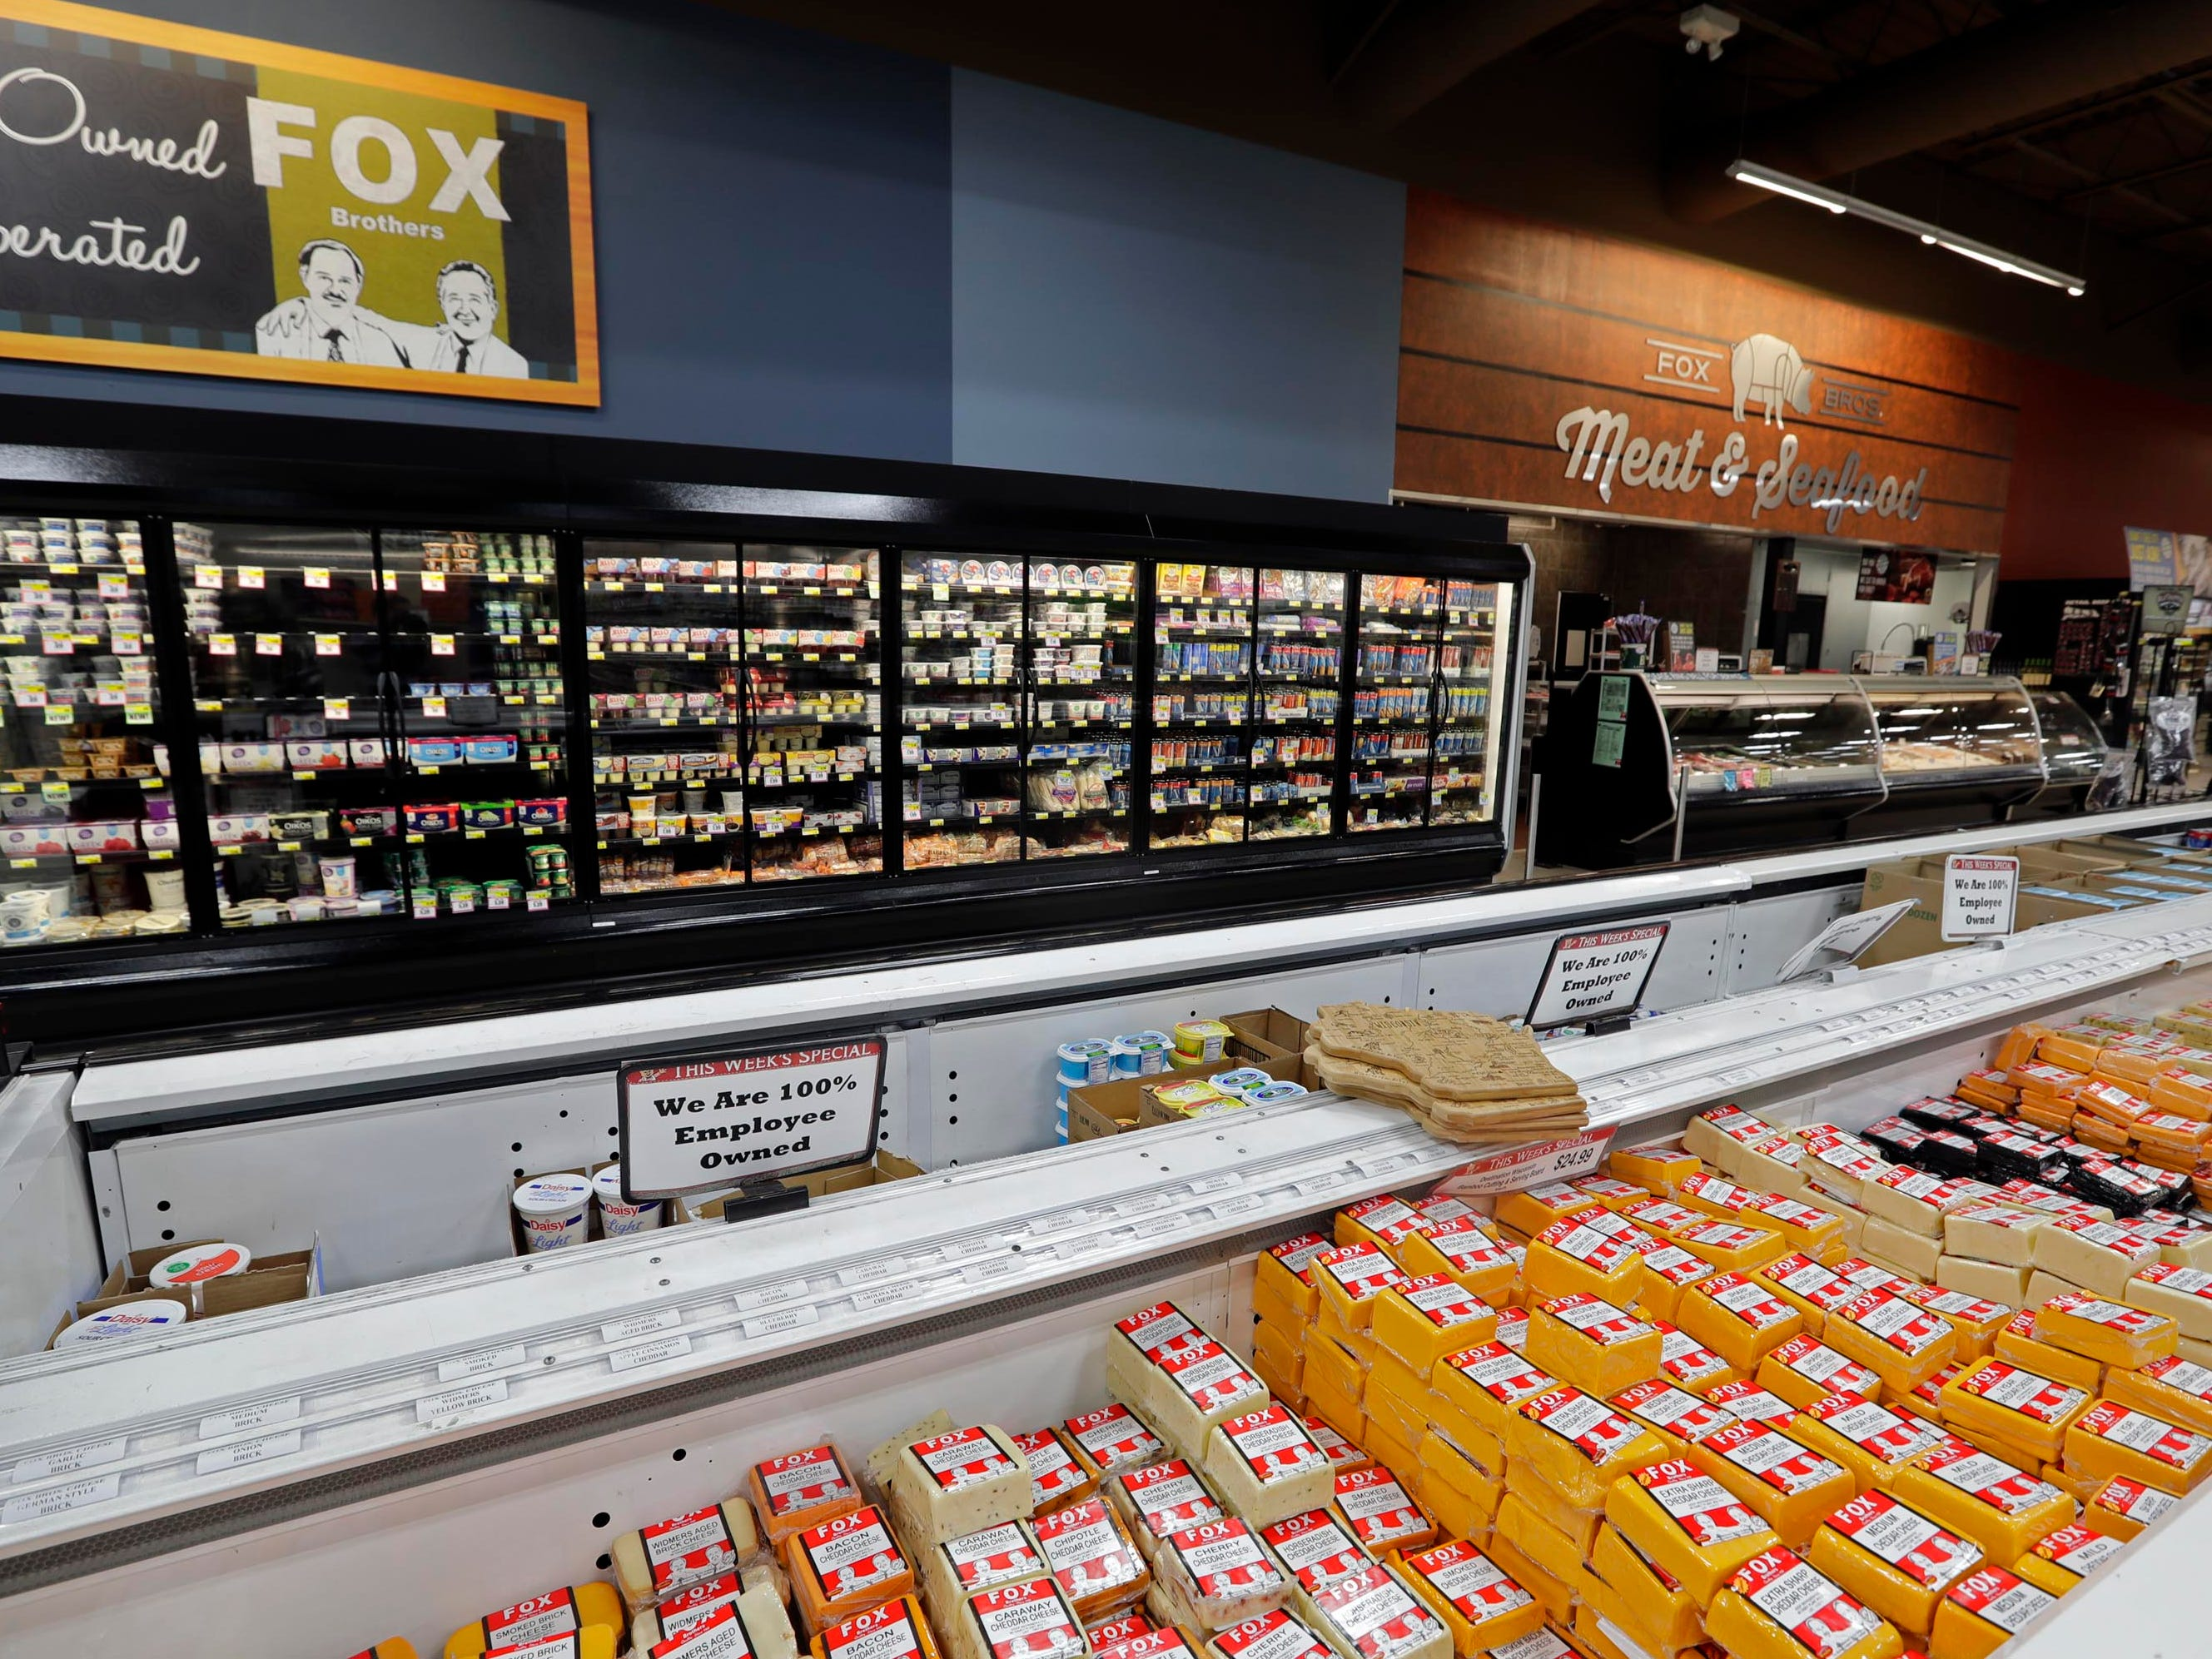 The Fox Bros. Piggly Wiggly store in Richfield features private label sausages and cheese prepared daily.